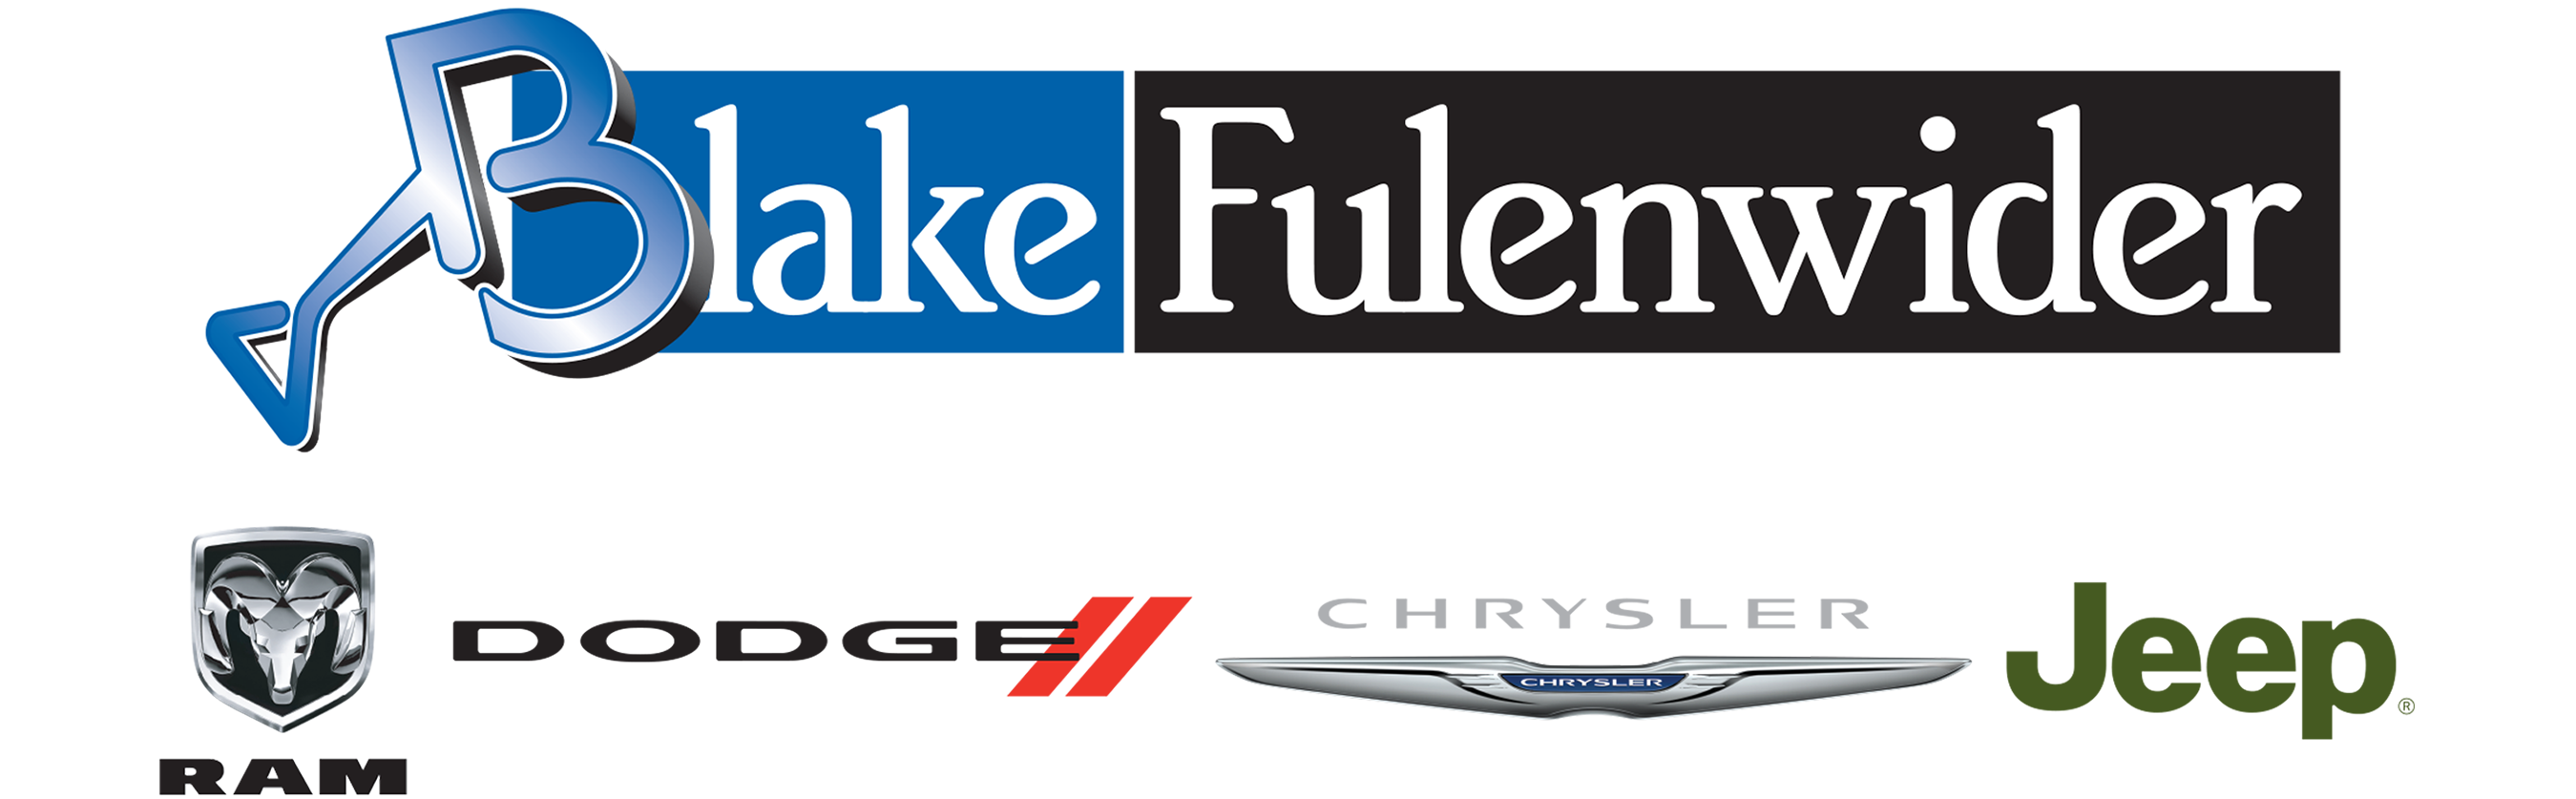 Blake Fulenwider Chrysler Dodge Jeep Ram